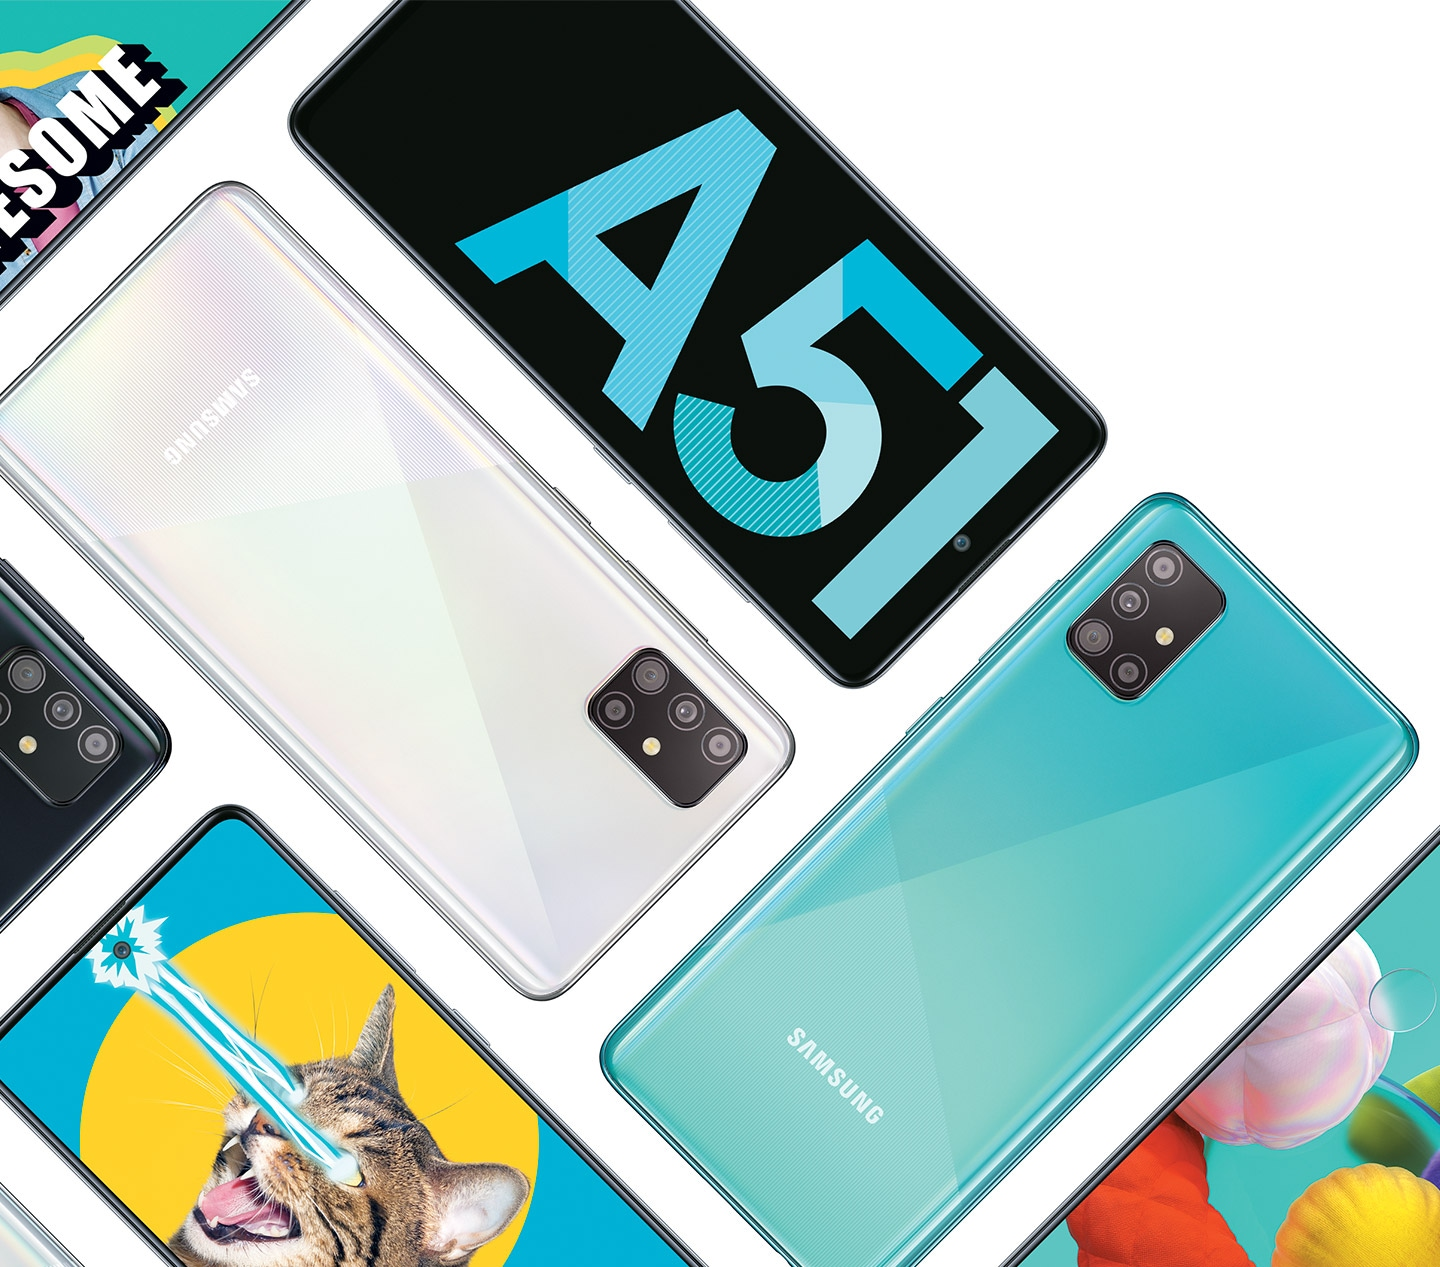 Samsung Galaxy A51 Becomes World's Best-Selling Android Smartphone